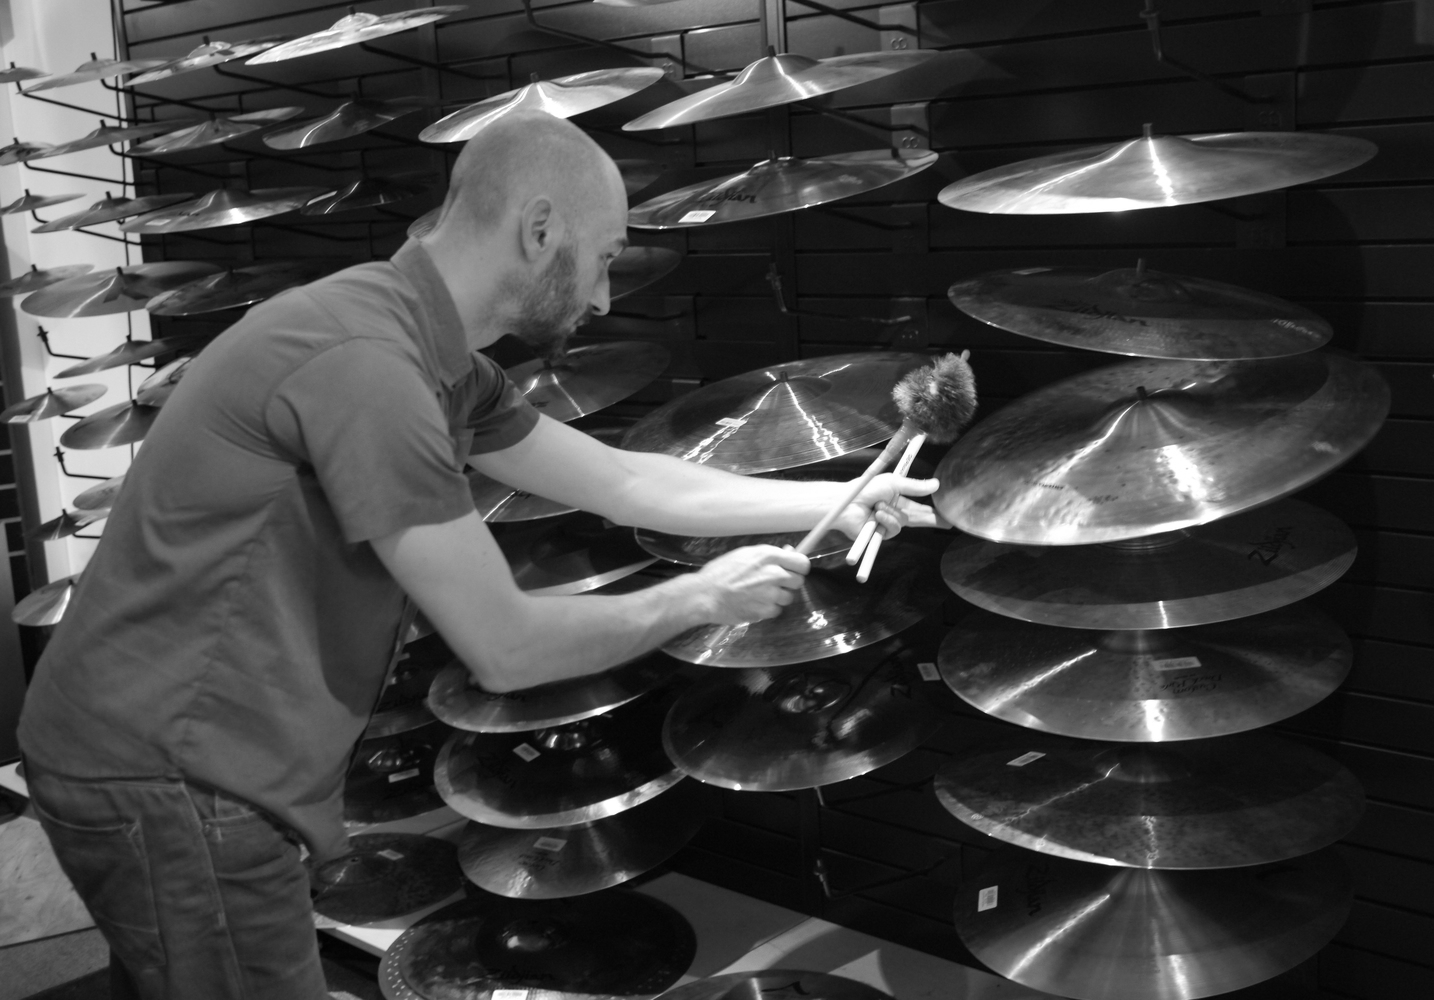 Testing and selecting cymbals at   Klangfarbe   music shop for the creation of CYMBAL ROLLS